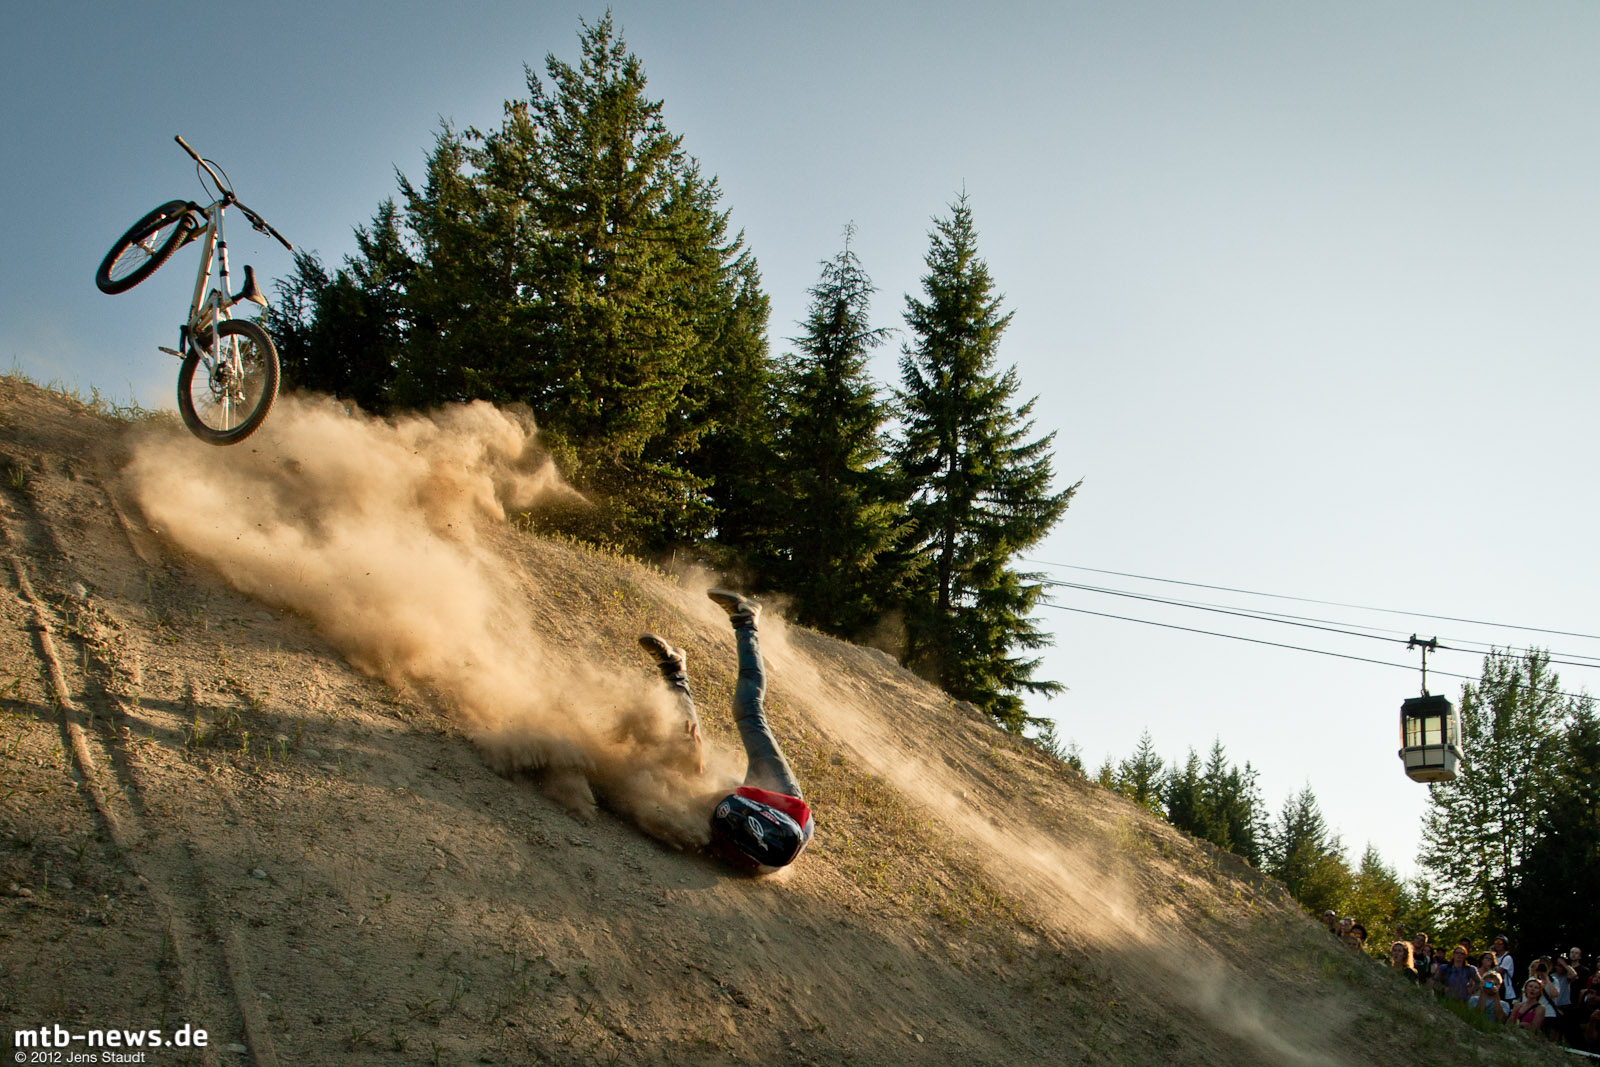 original_Whistler_Crankworx_Speed_and_Style_by_Jens_Staudt_-_9421